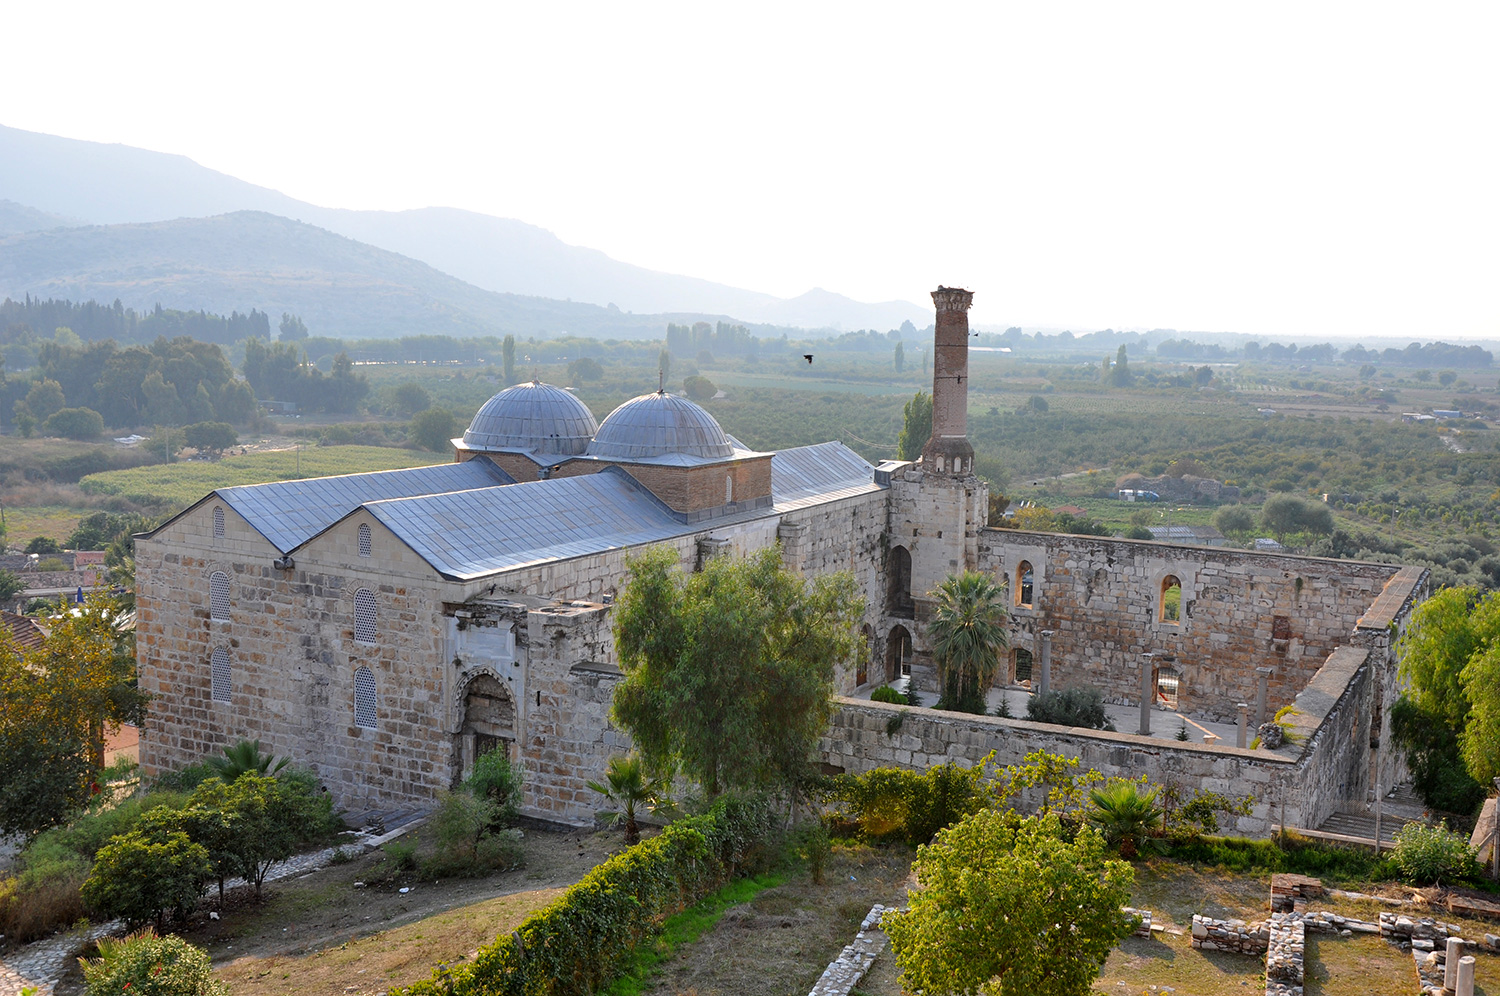 The Isa Bey Mosque on Ayasoluk Hill